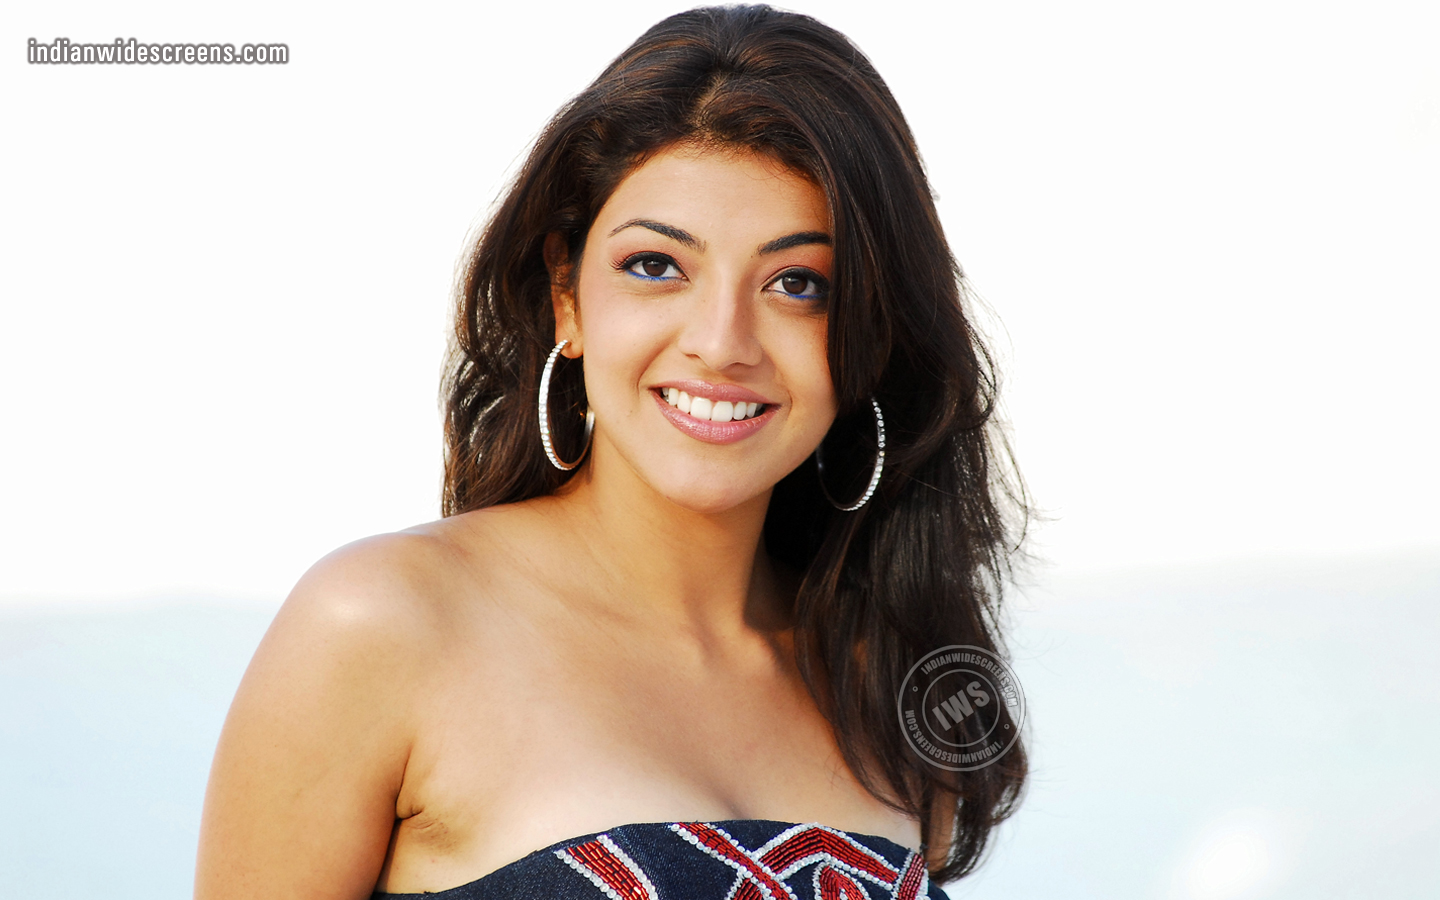 from Emmet www tamil kajal xxx photos com